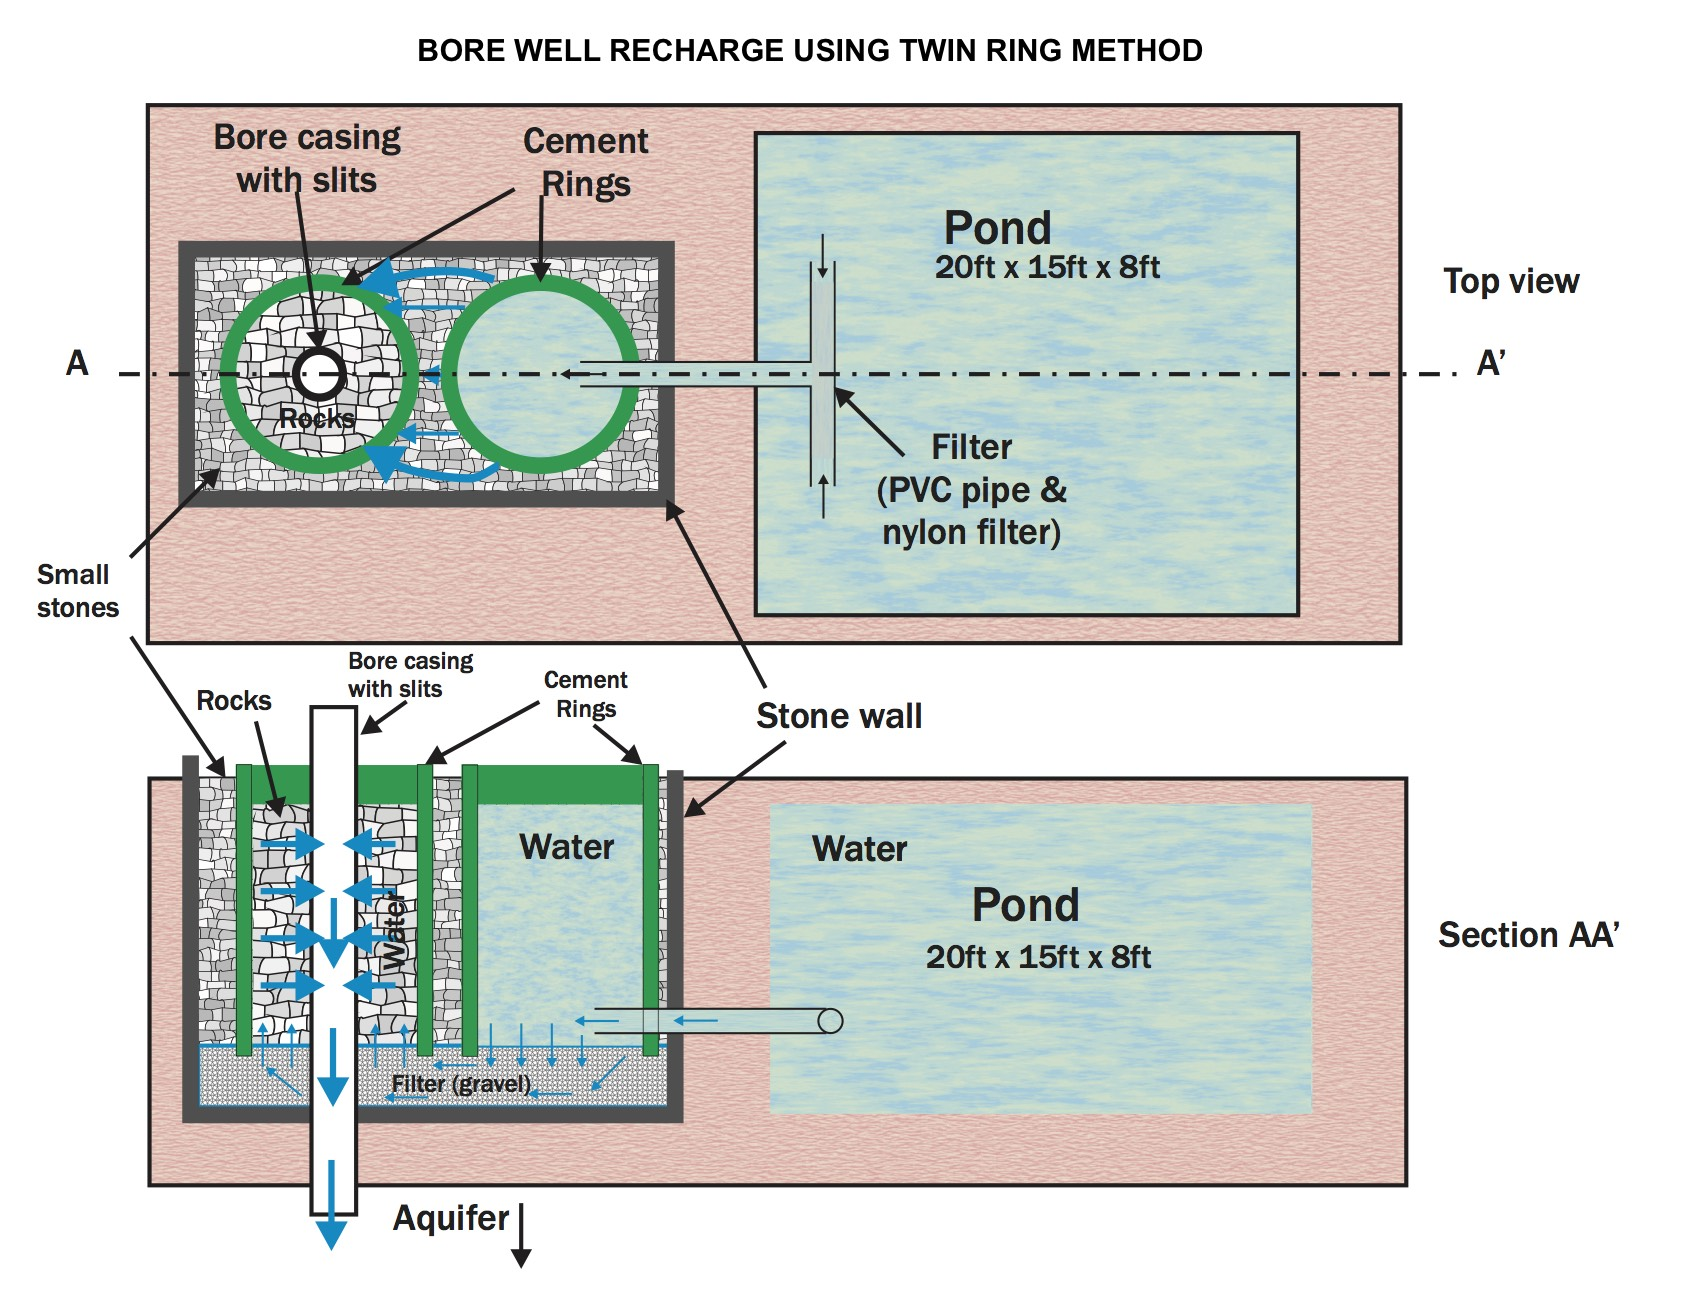 Twin Ring Method of Bore well Recharge